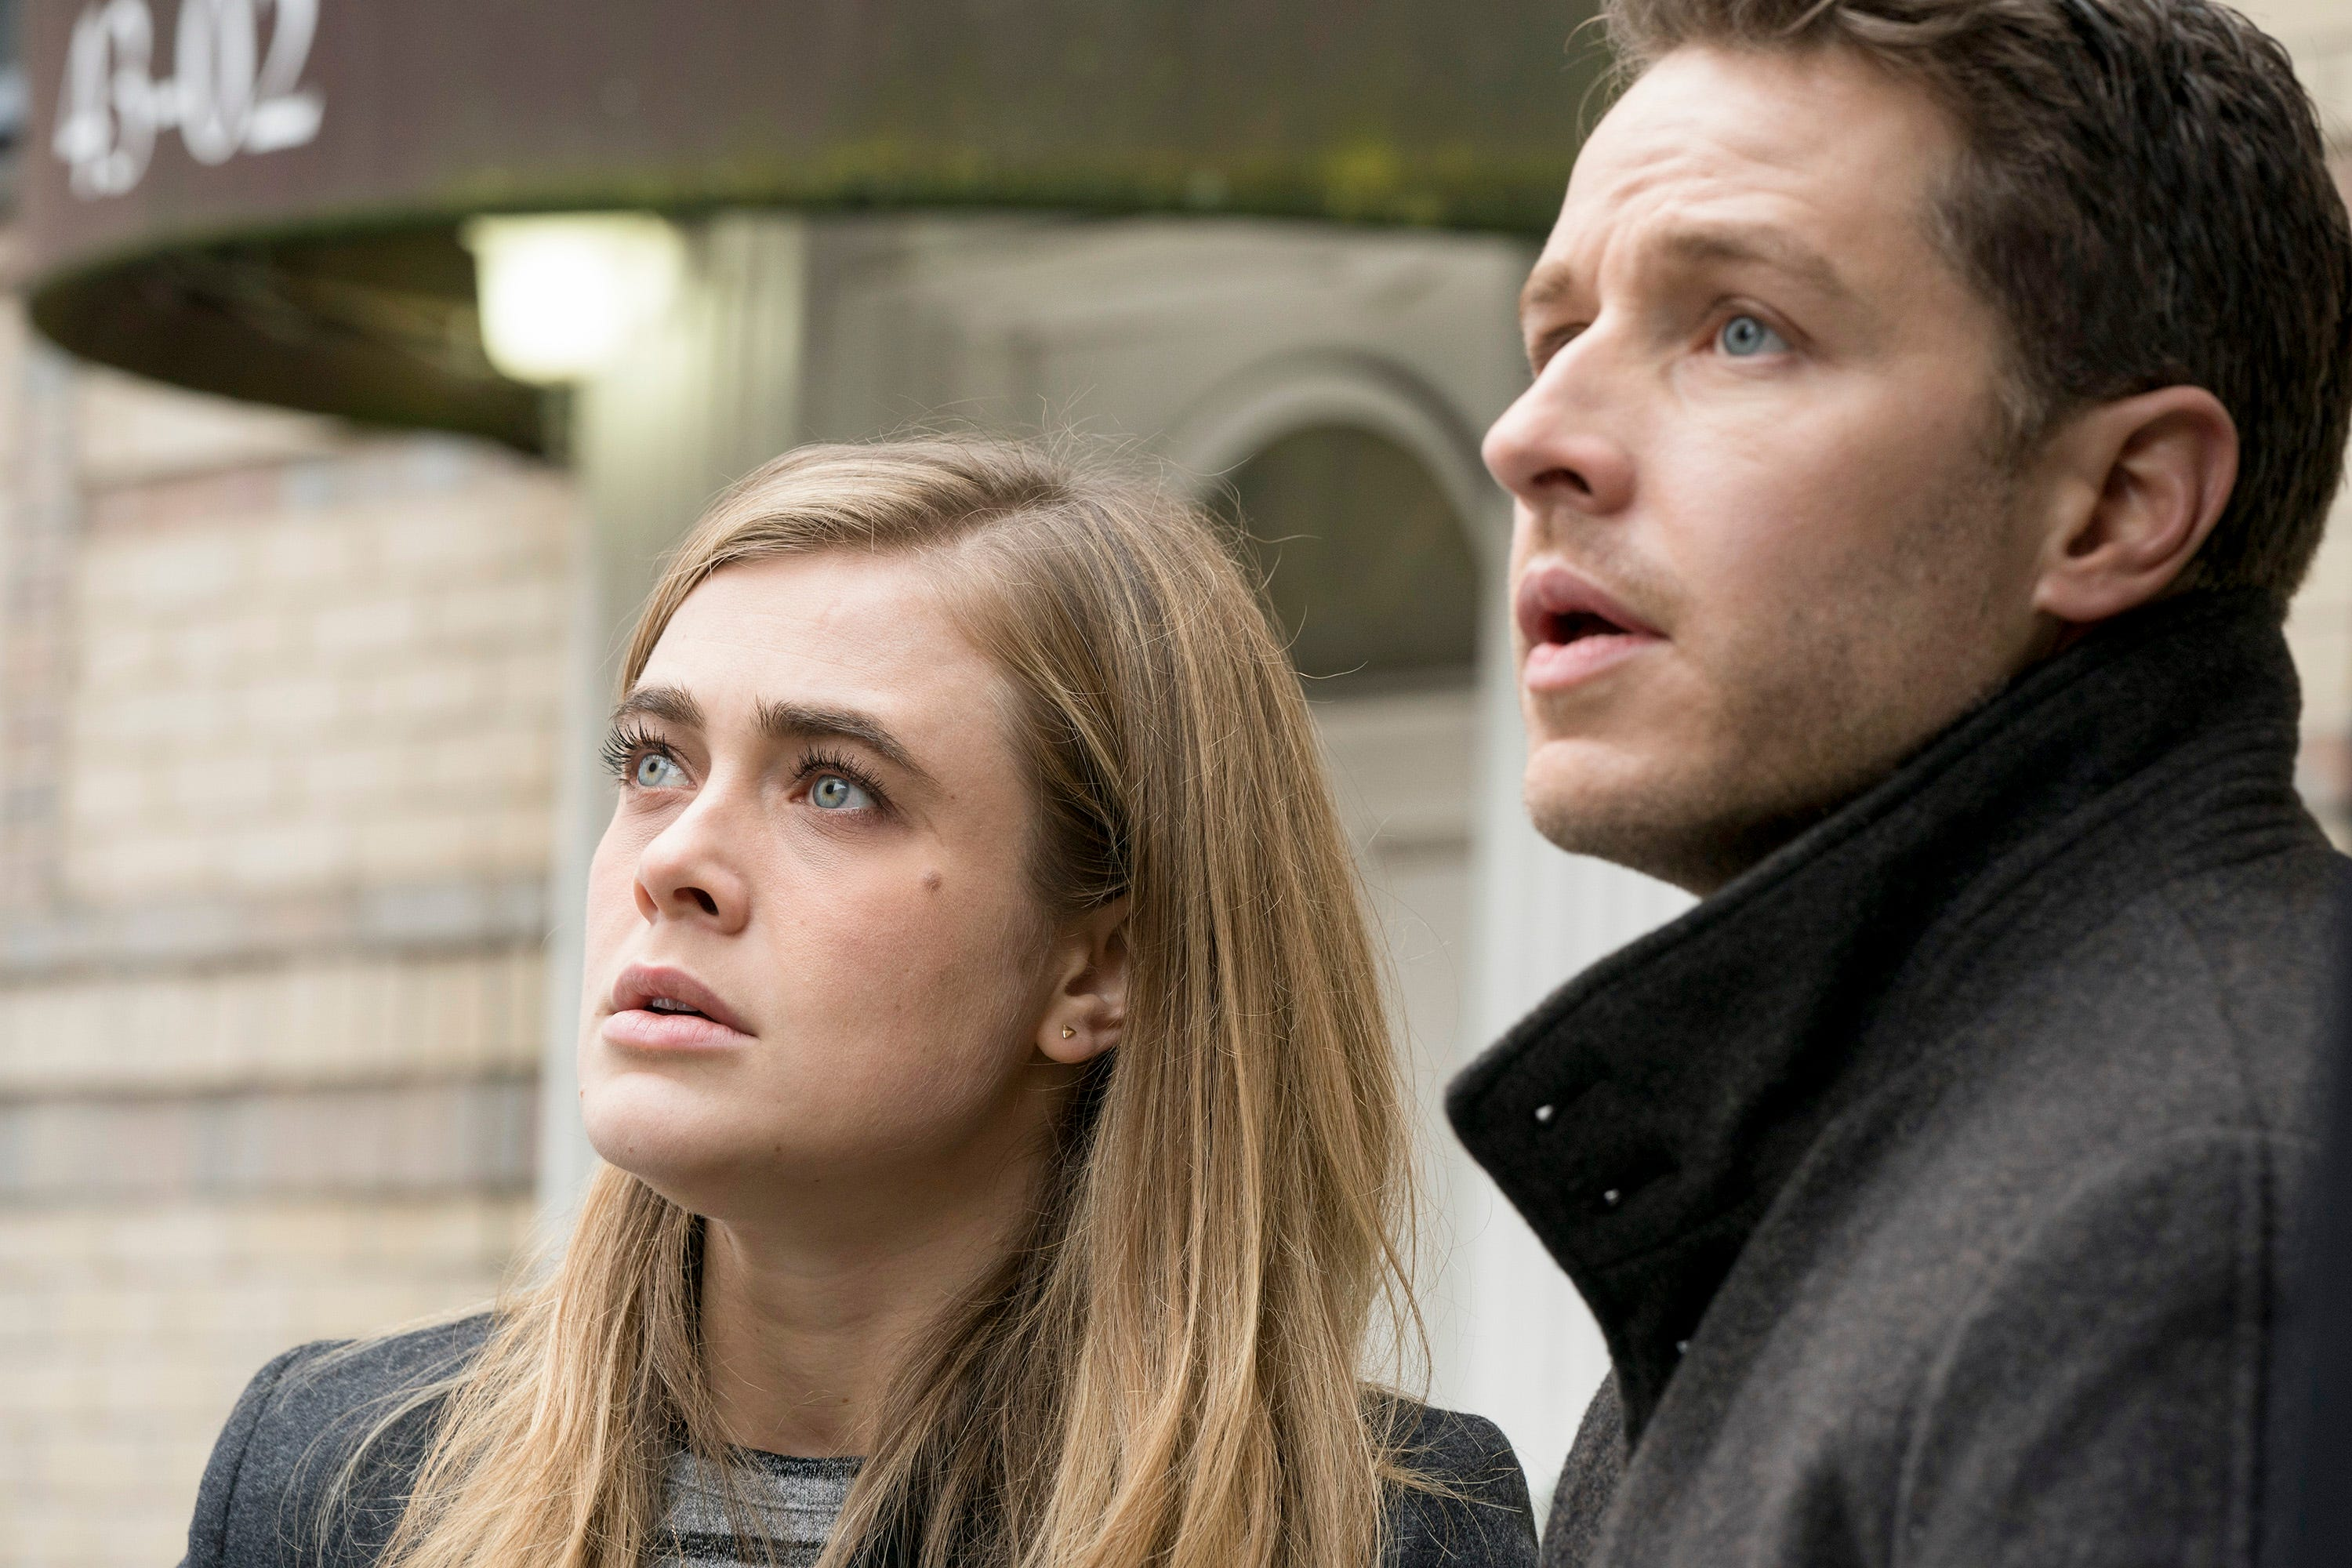 NBC cancels  Manifest  after the Season 3 finale, but creator, stars want to find new home